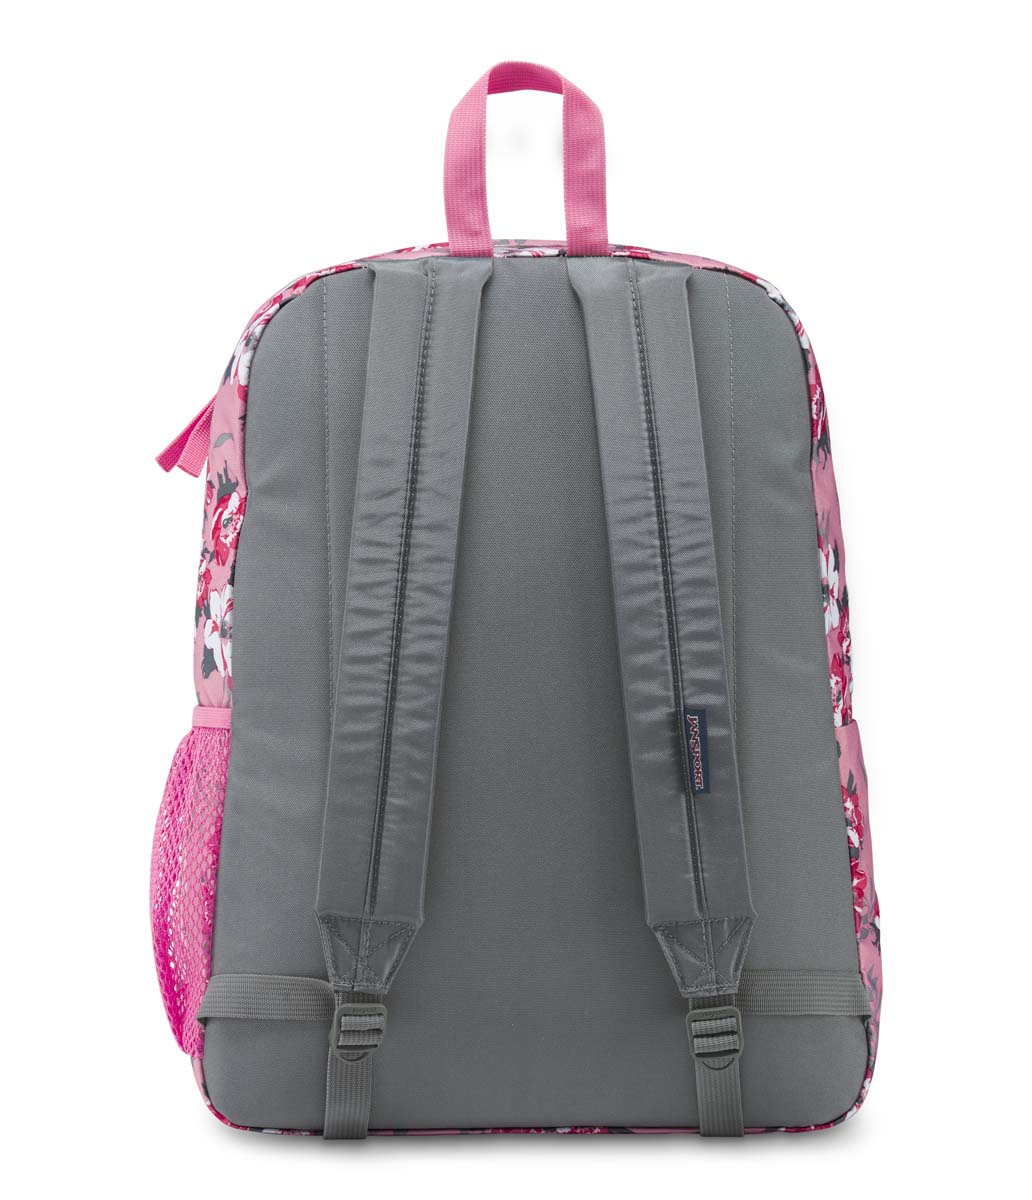 161a828aa3 Jansport Digibreak Backpack - Prism Pink Pretty Posey (Water Bottle  Compartment)